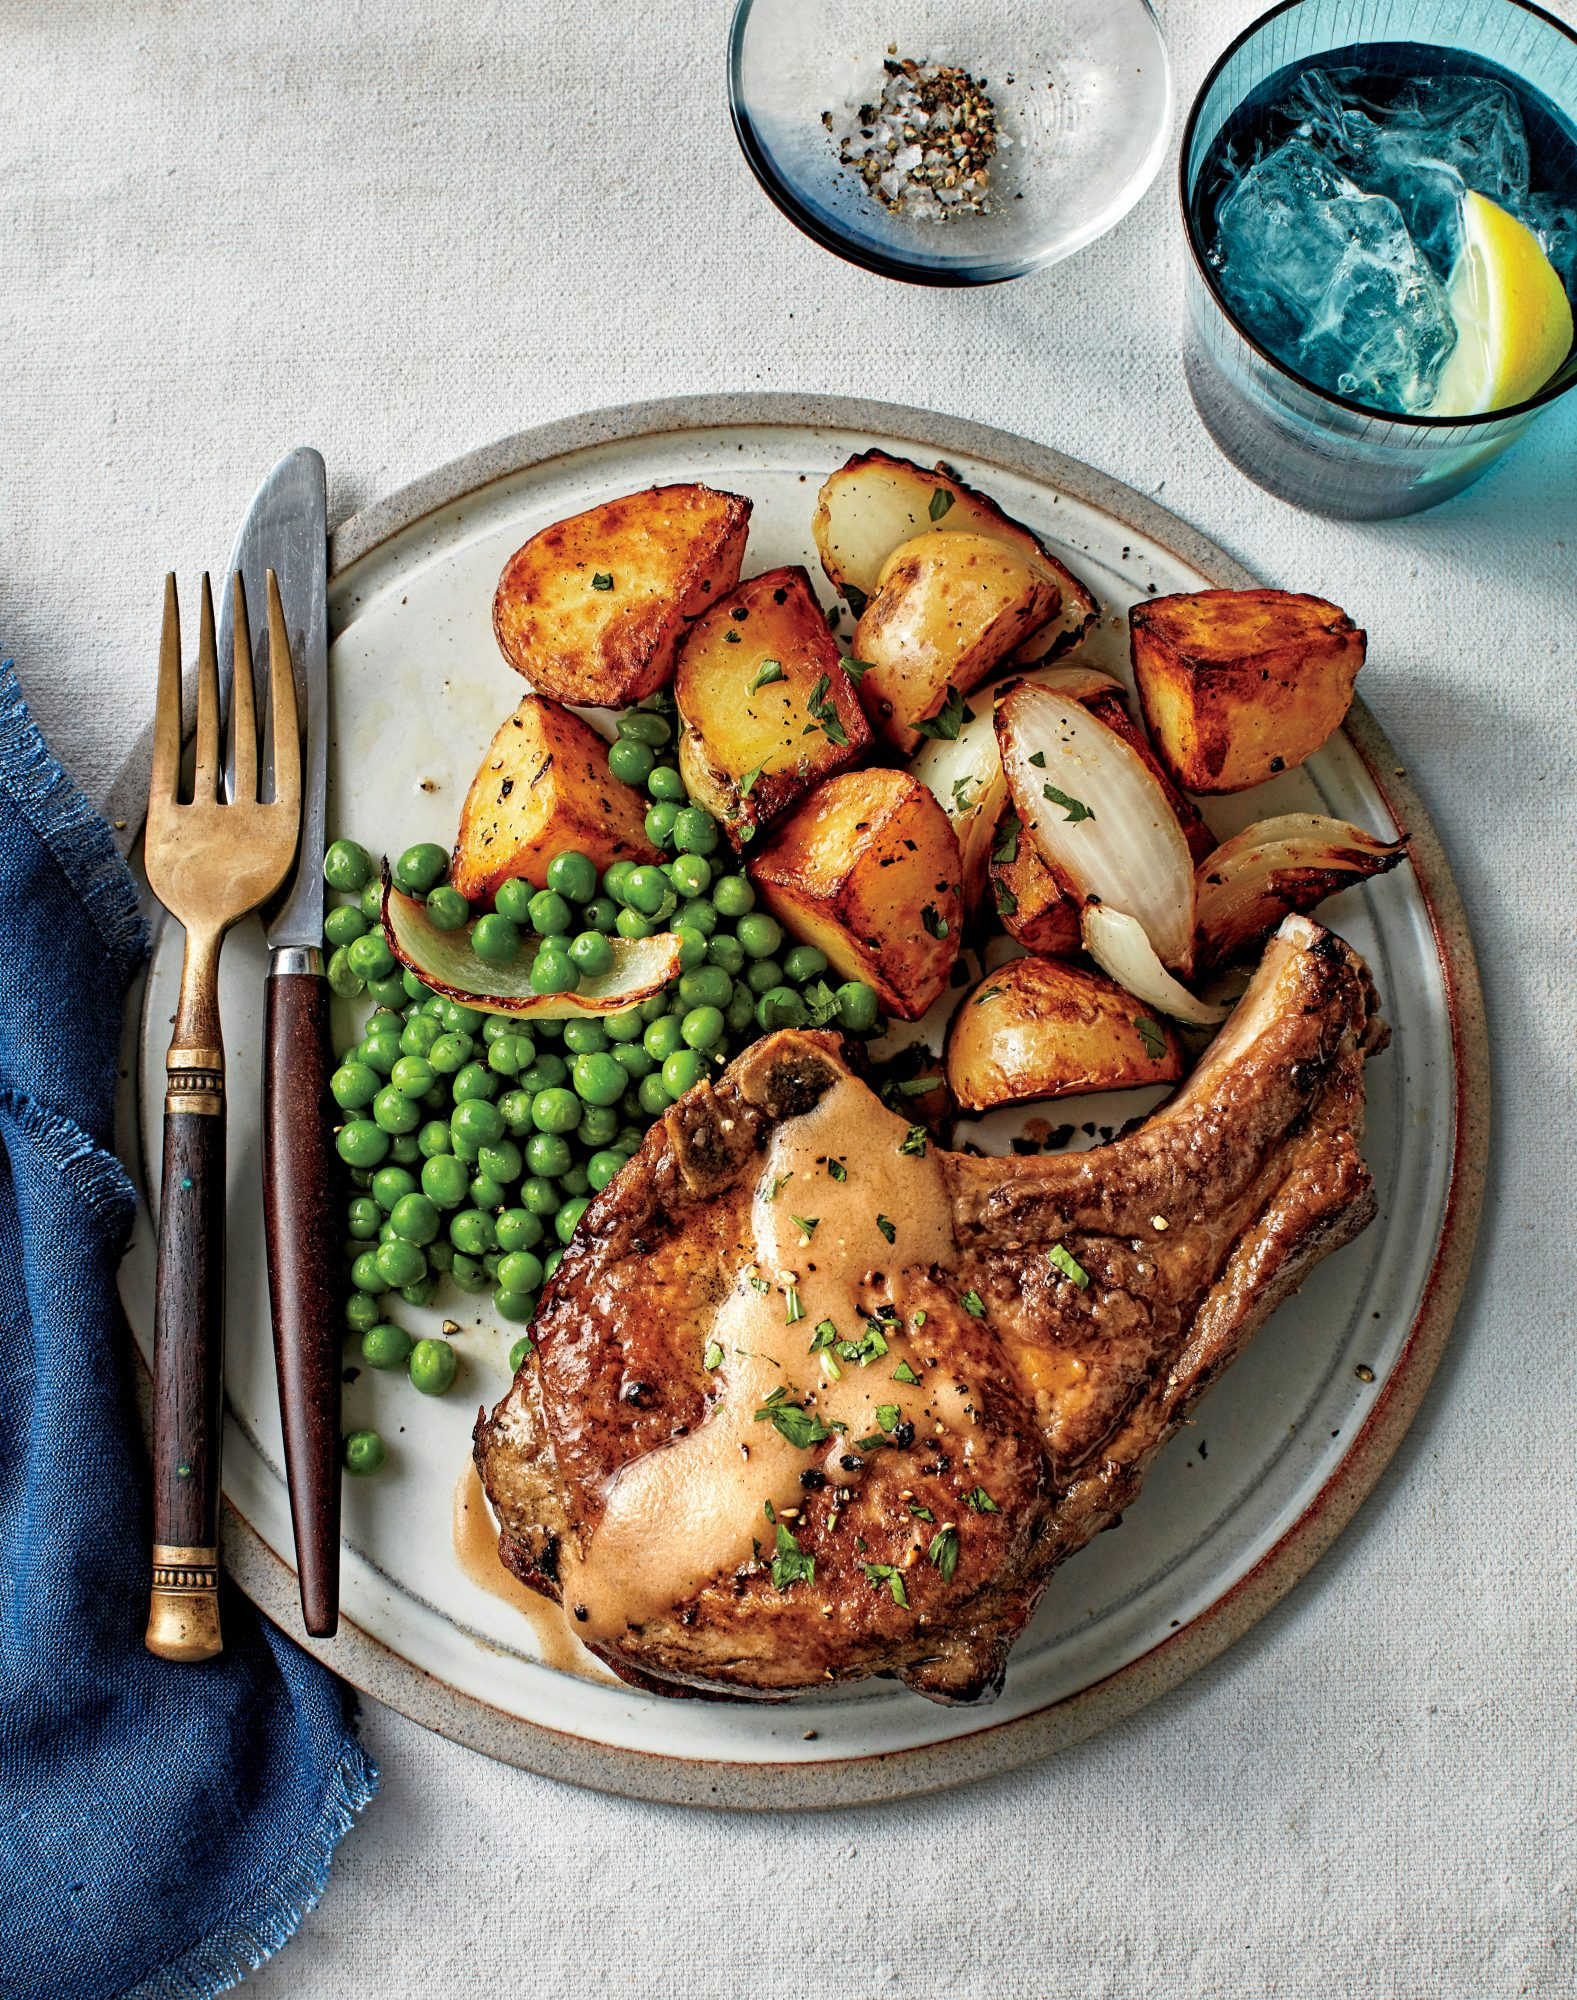 Simple Suppers Challenge: Fried Pork Chops with Peas and Potatoes